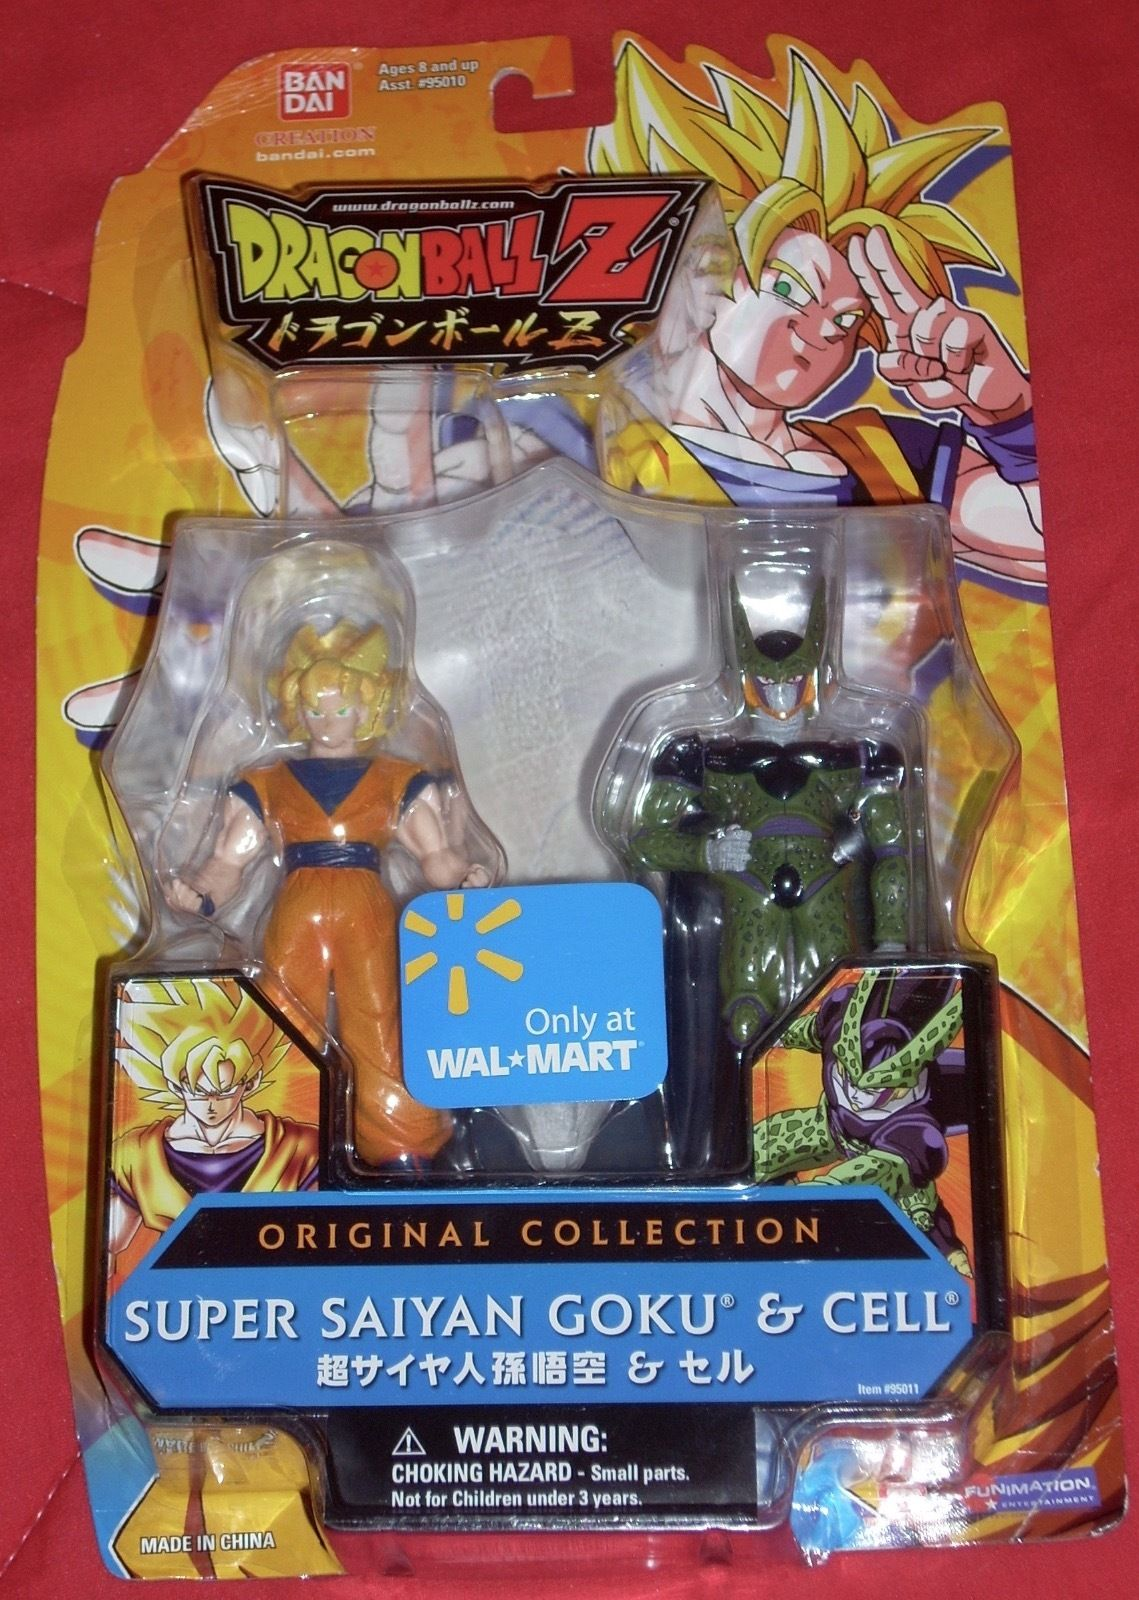 Original Collection – Super Saiyan Goku and Cell